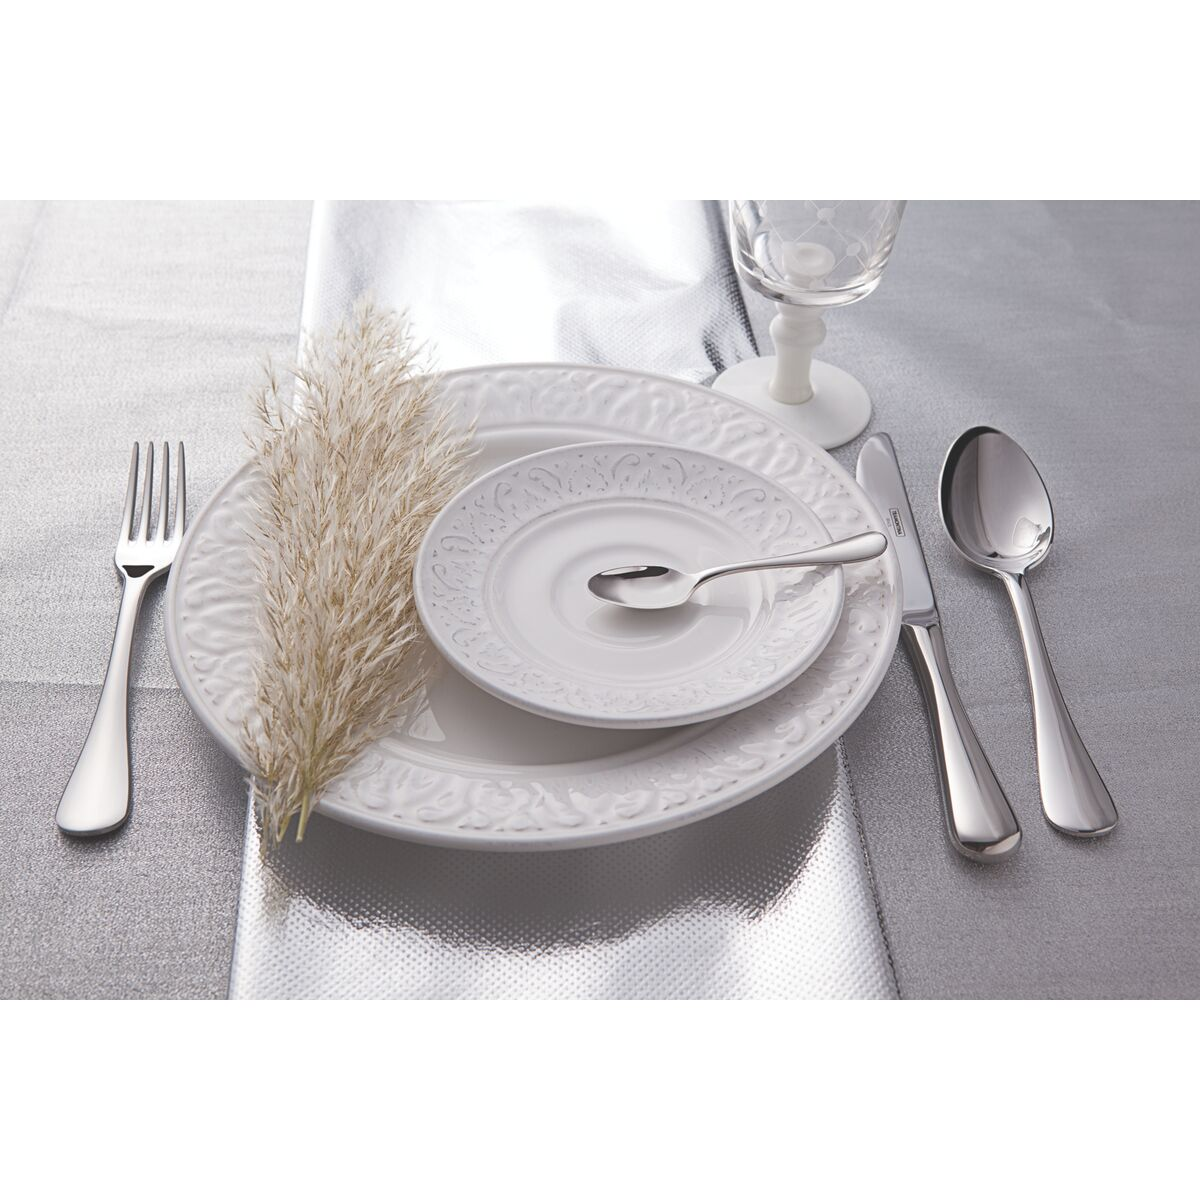 Tramontina - 130 pc. Stainless steel flatware set with table knife ...